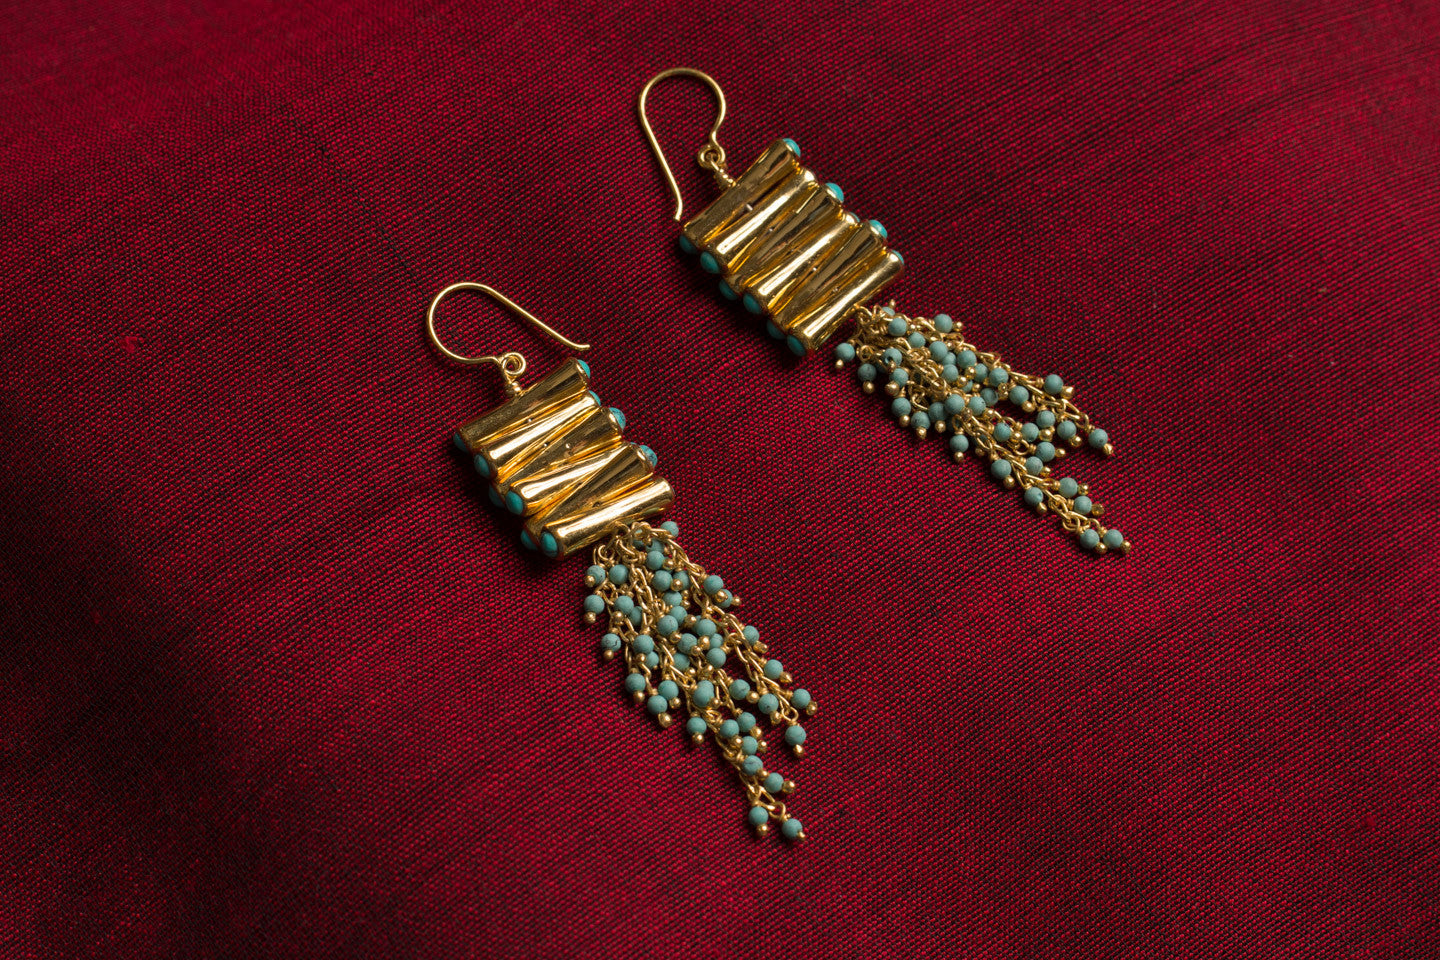 20a457-silver-gold-plated-amrapali-earrings-drop-turquoise-gold-bead-alternate-view